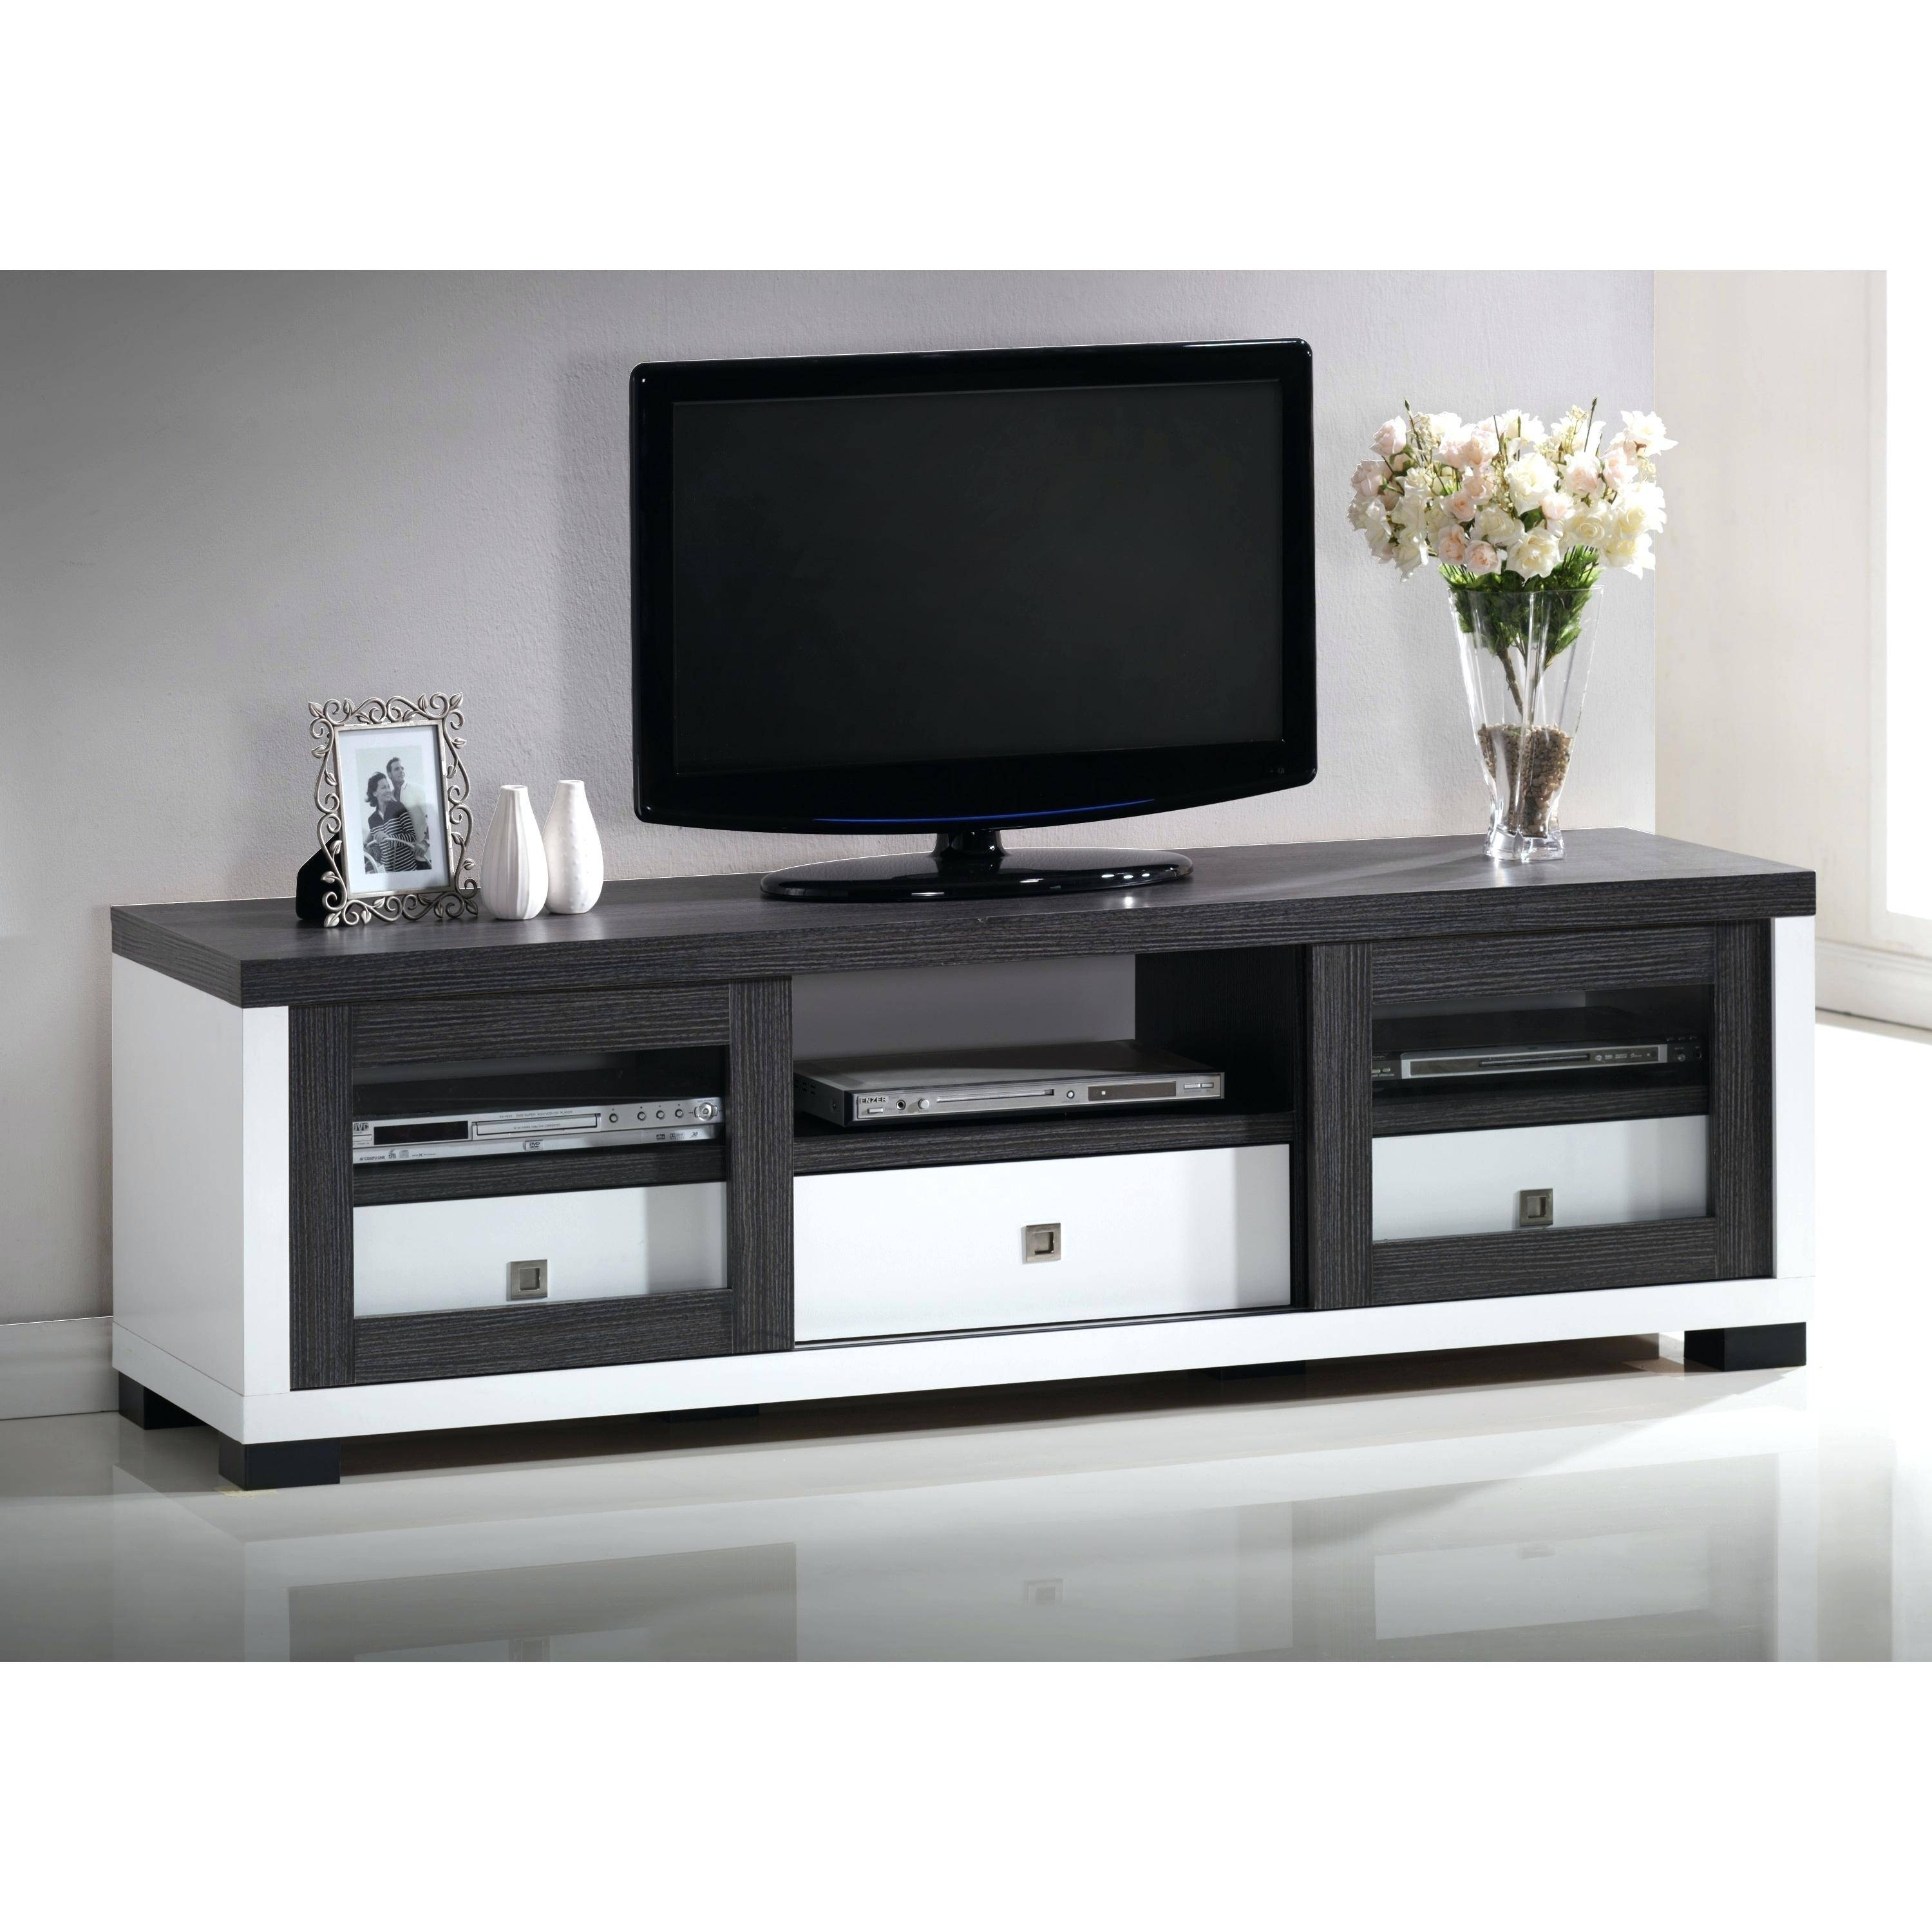 Tv Stand : Appealing Mirrored Buffet Mirrored Vanity Table For Sideboards Tv (#15 of 15)